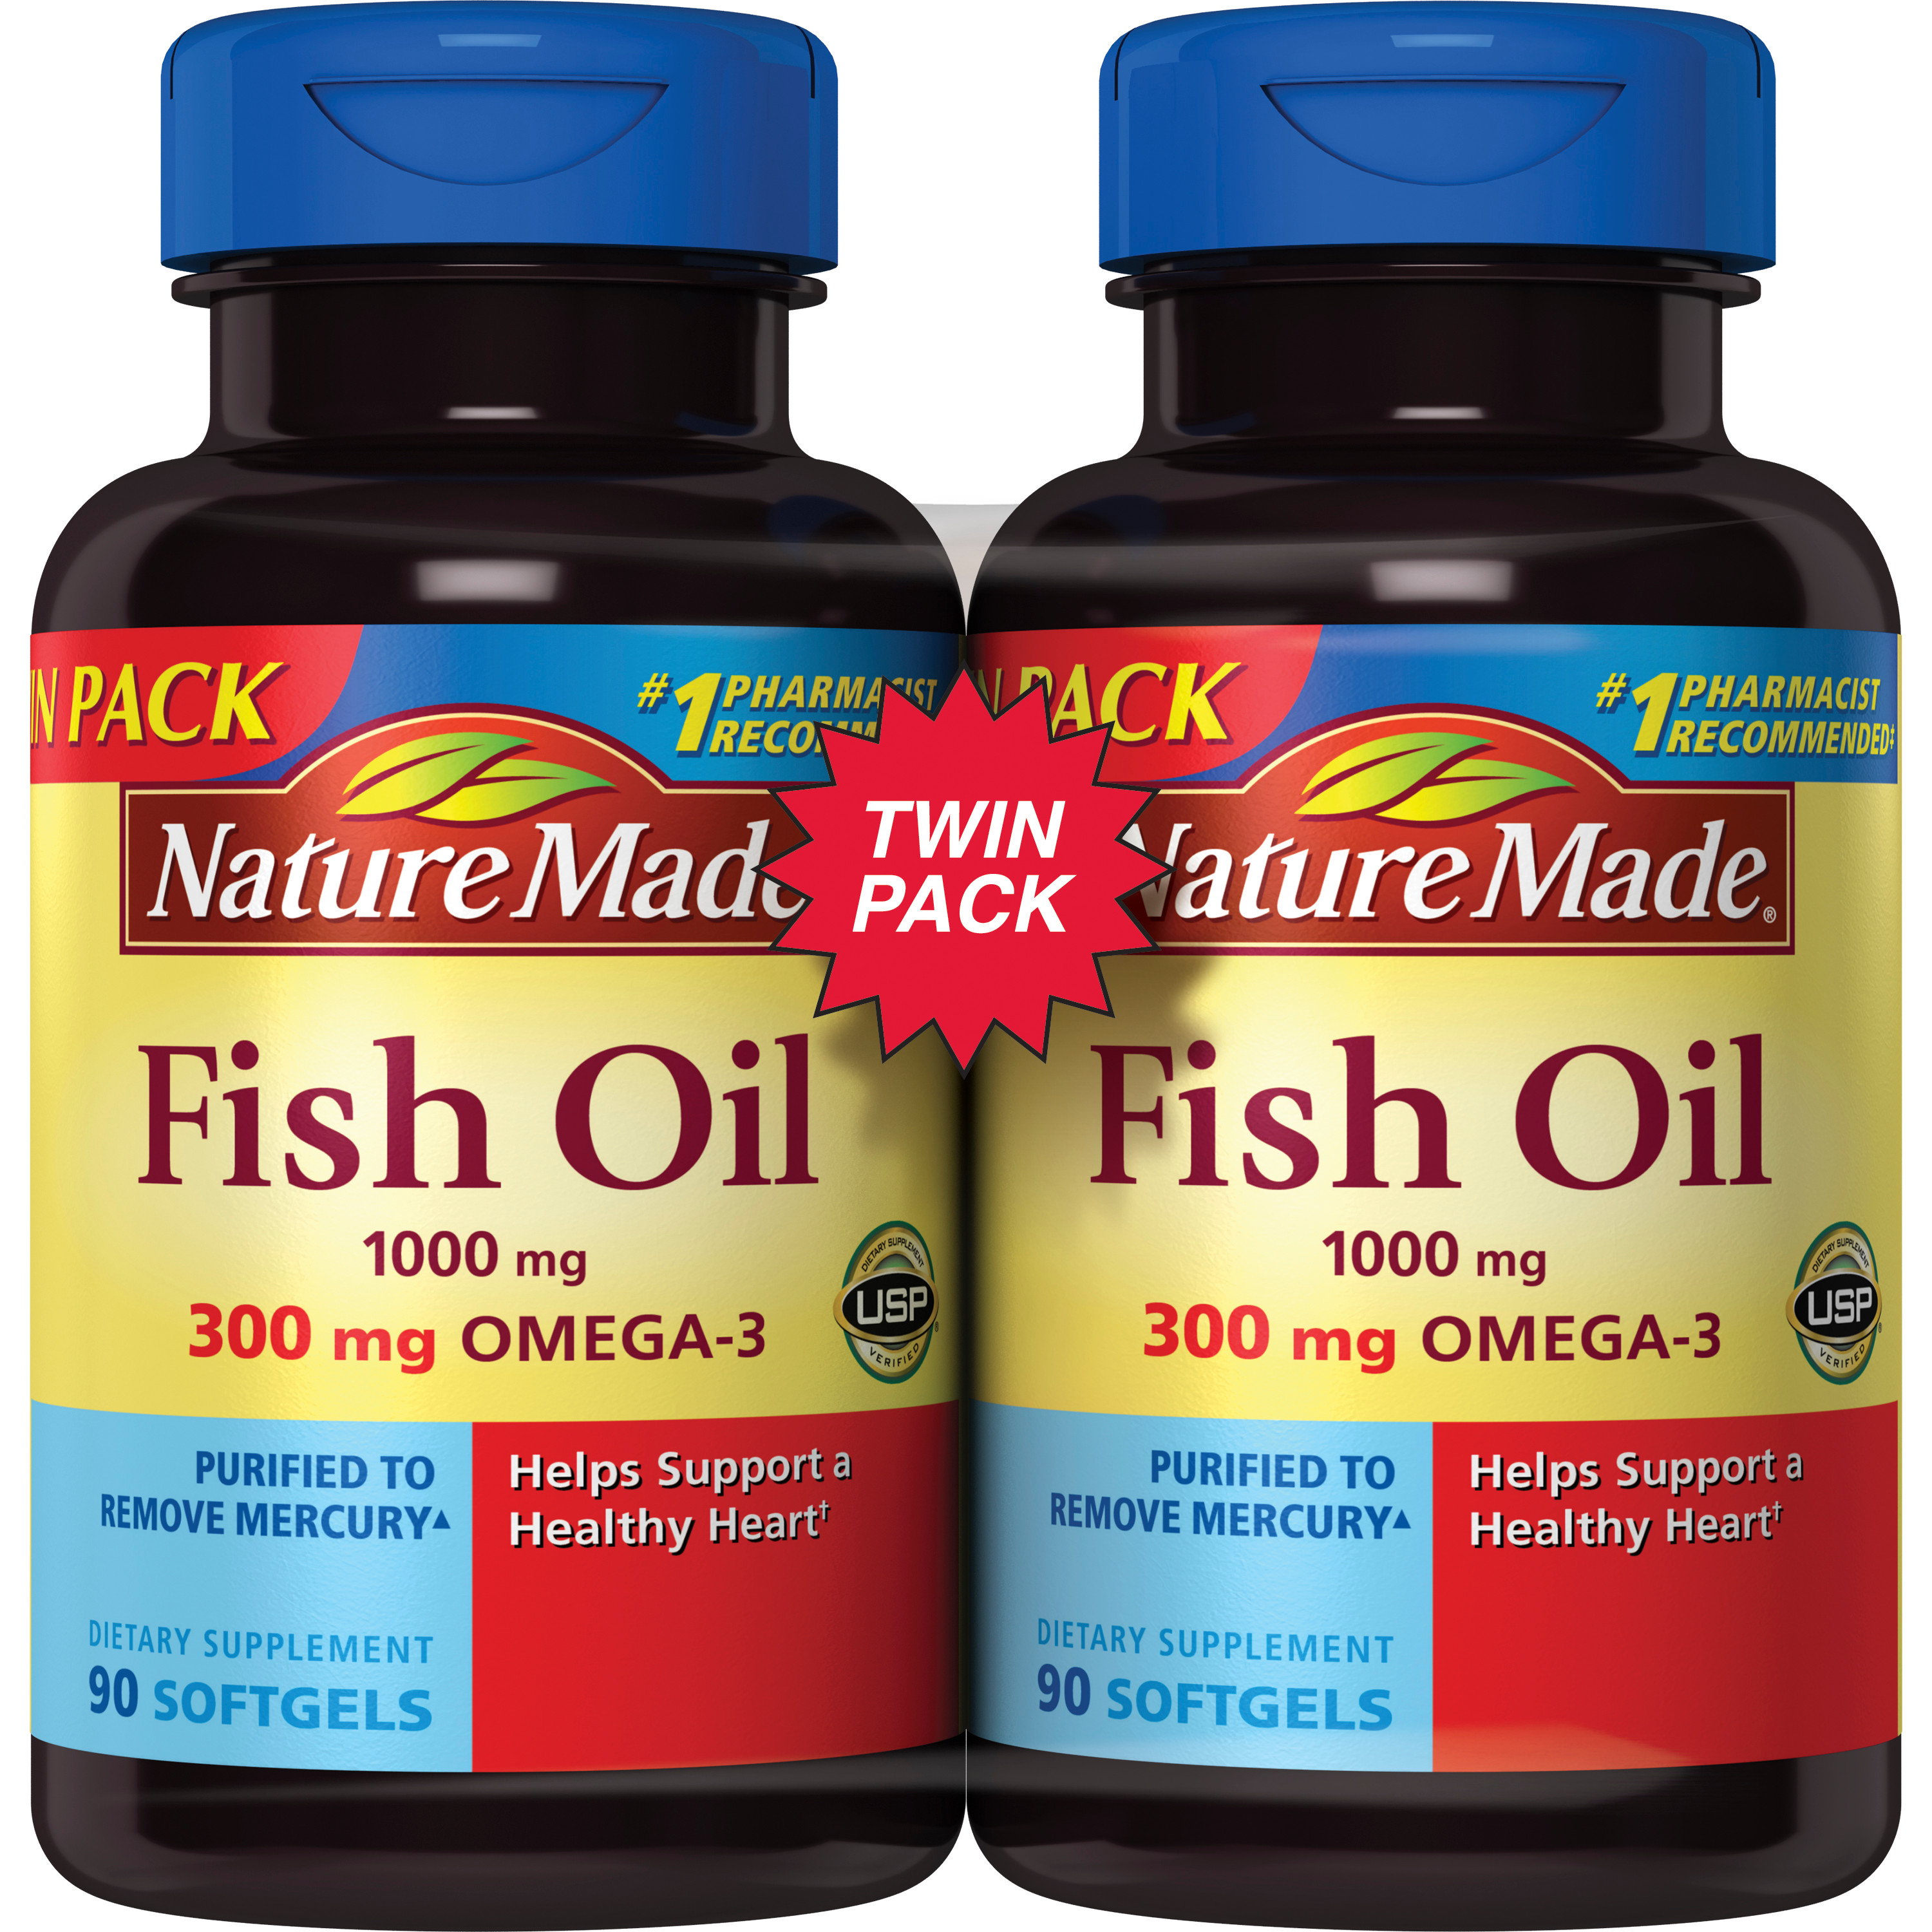 Nature Made Fish Oil 1000mg 300mg Omega-3 Twinpk, 180 count